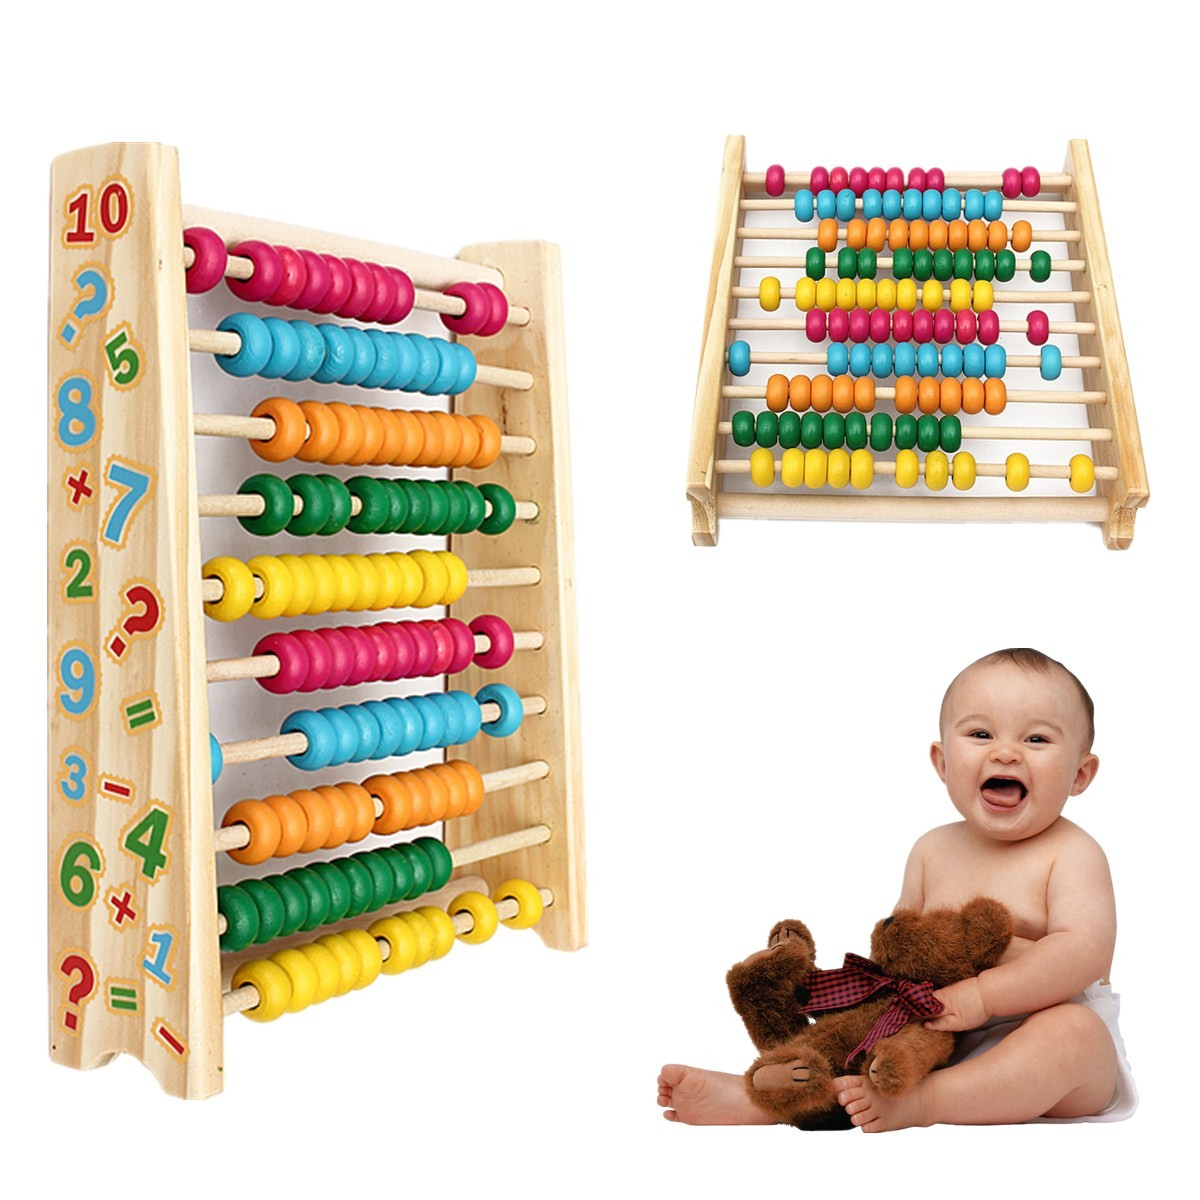 Wooden Abacus Classic Math Number Educational Counting Teaching Educational Toys w/100 Beads For Kid Baby Children Boy Girl